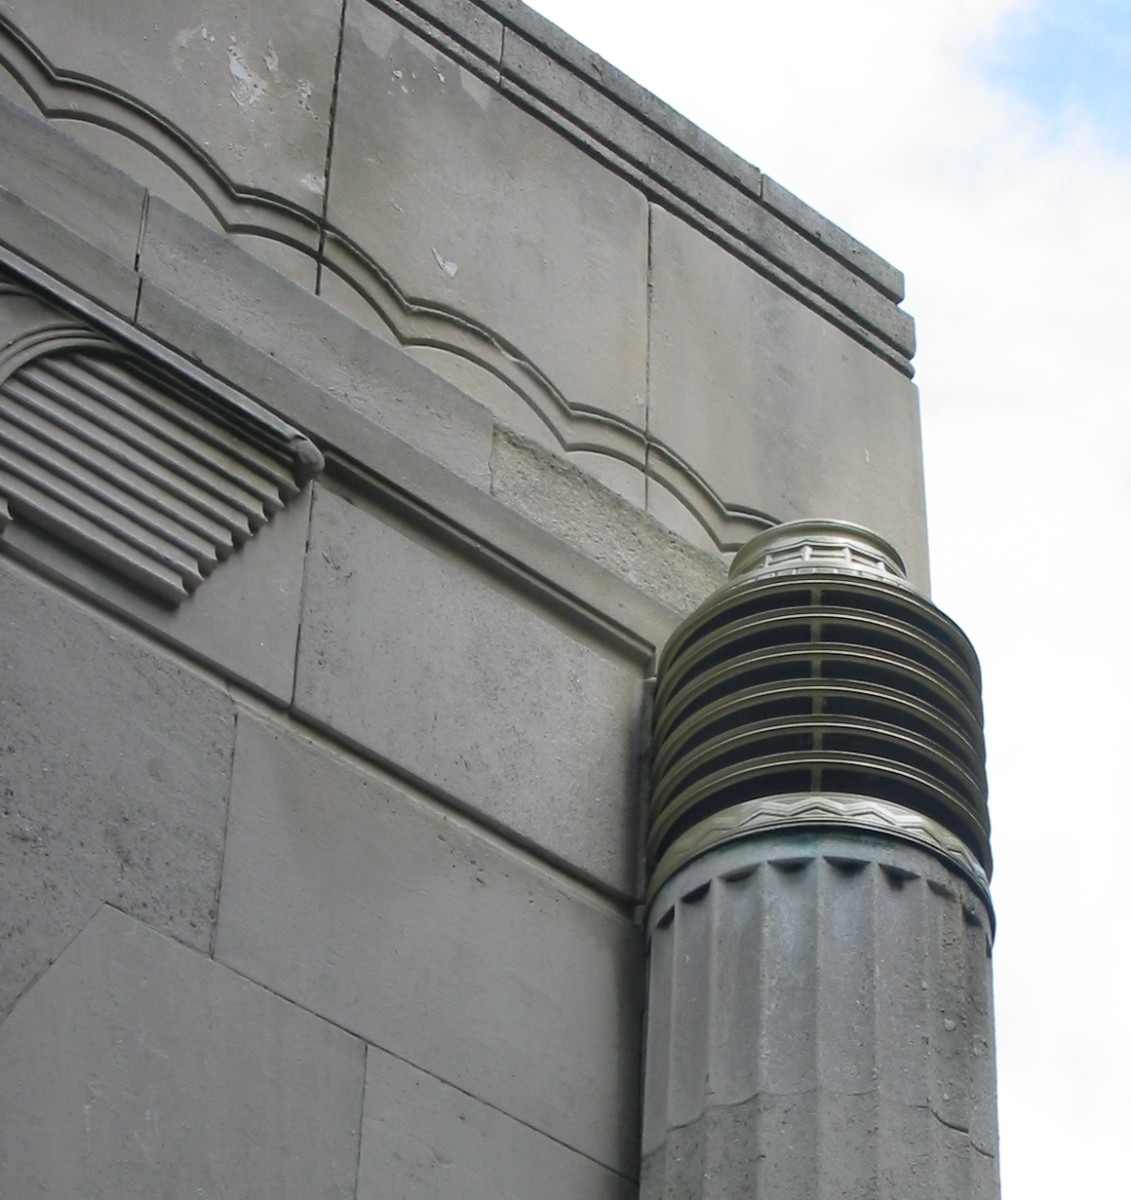 Another view of the Queensway tunnel in Liverpool, with details of the neat scalloped edges and simple pillars to show the clean lines of the style.